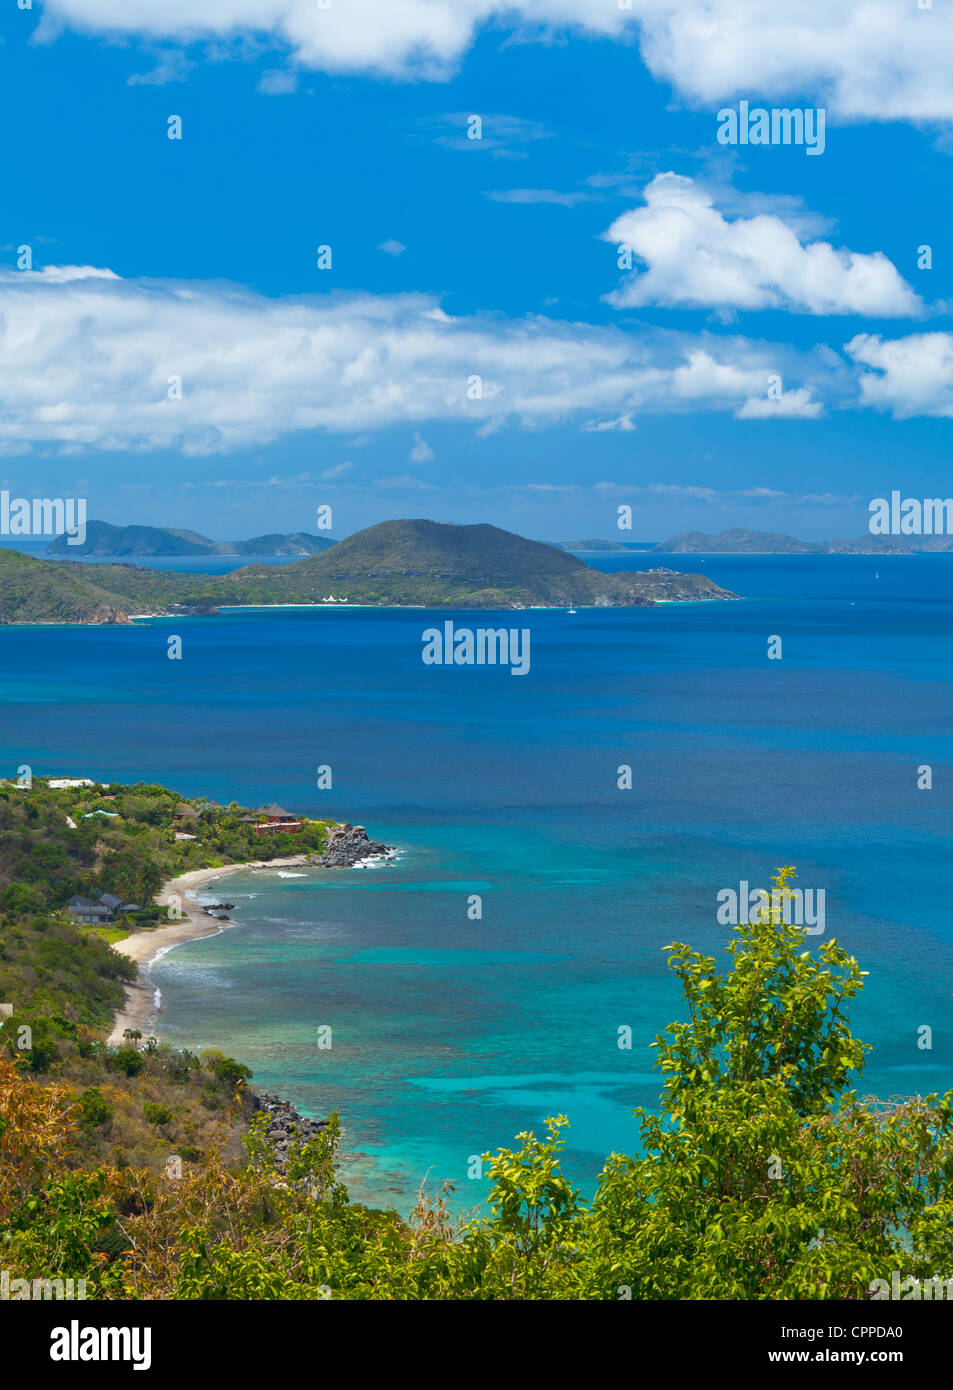 Virgin Gorda, British Virgin Islands, Caribbean View of Tortola across the Sir Francis Drake Channel - Stock Image